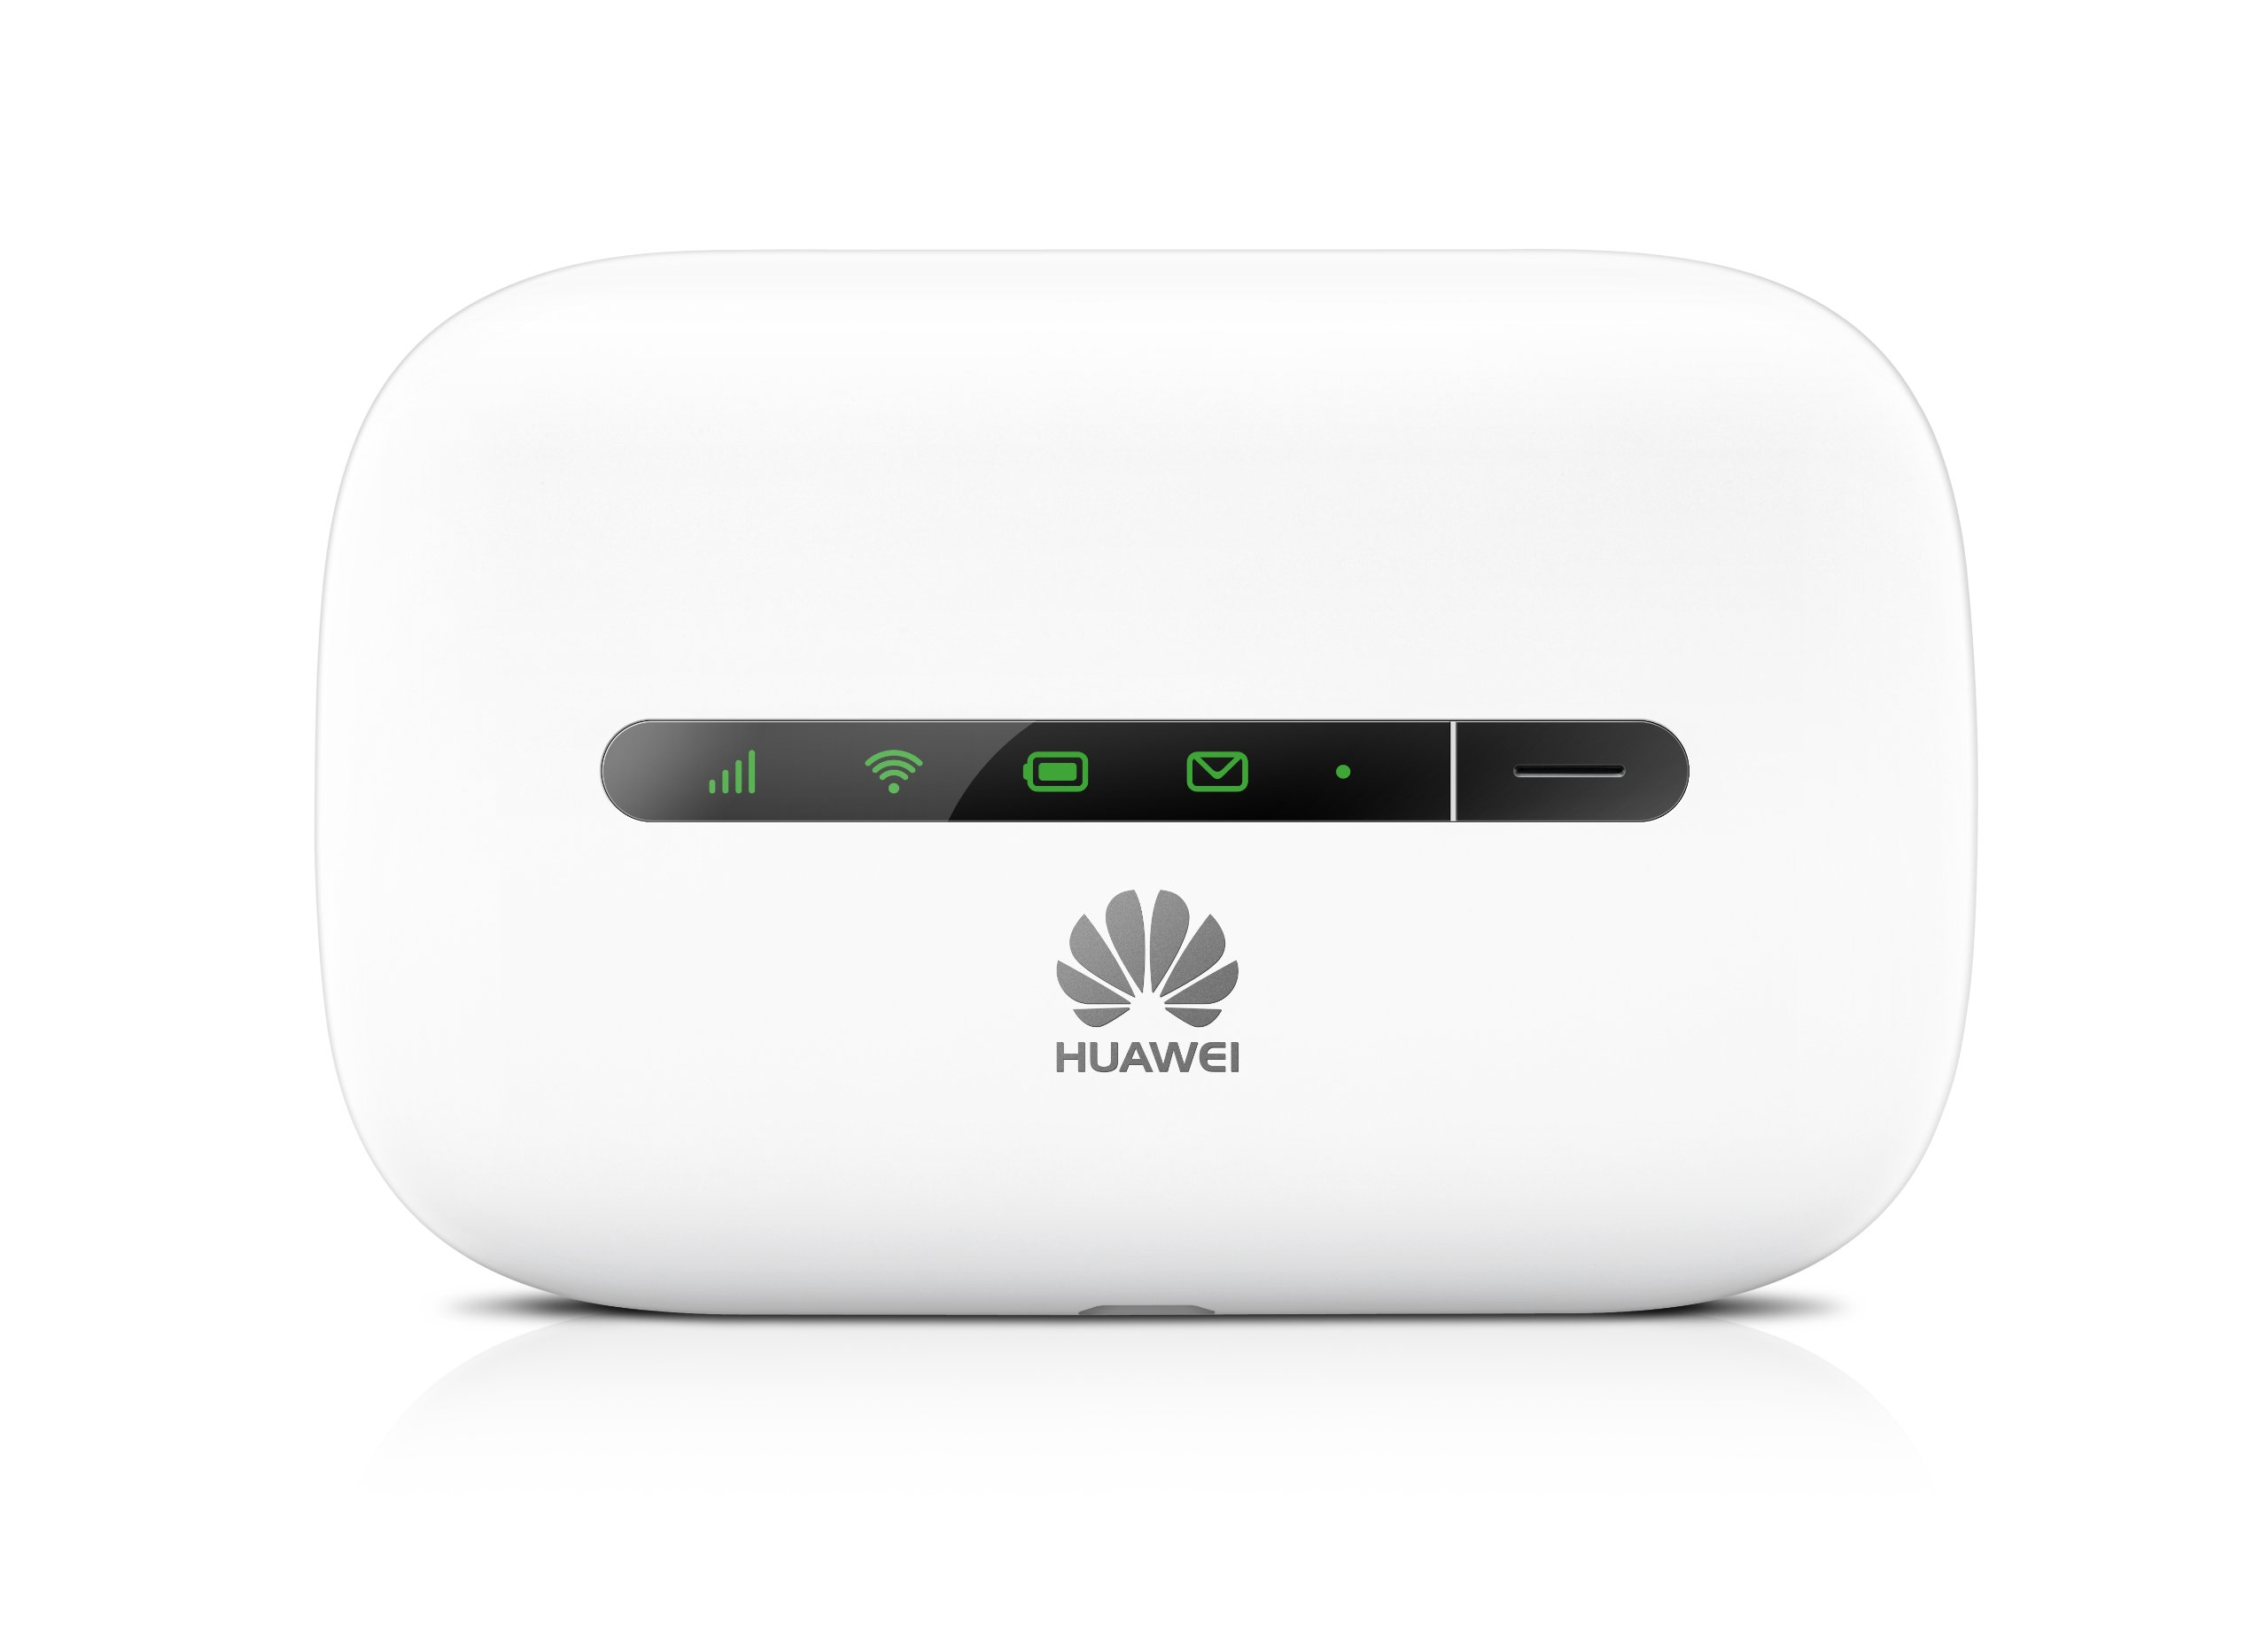 Huawei E5330Bs-2 3G Mobile WiFi Hotspot (3G in Europe, Asia, Middle East & Africa), OEM/ORIGINAL from Huawei. White by HUAWEI (Image #1)